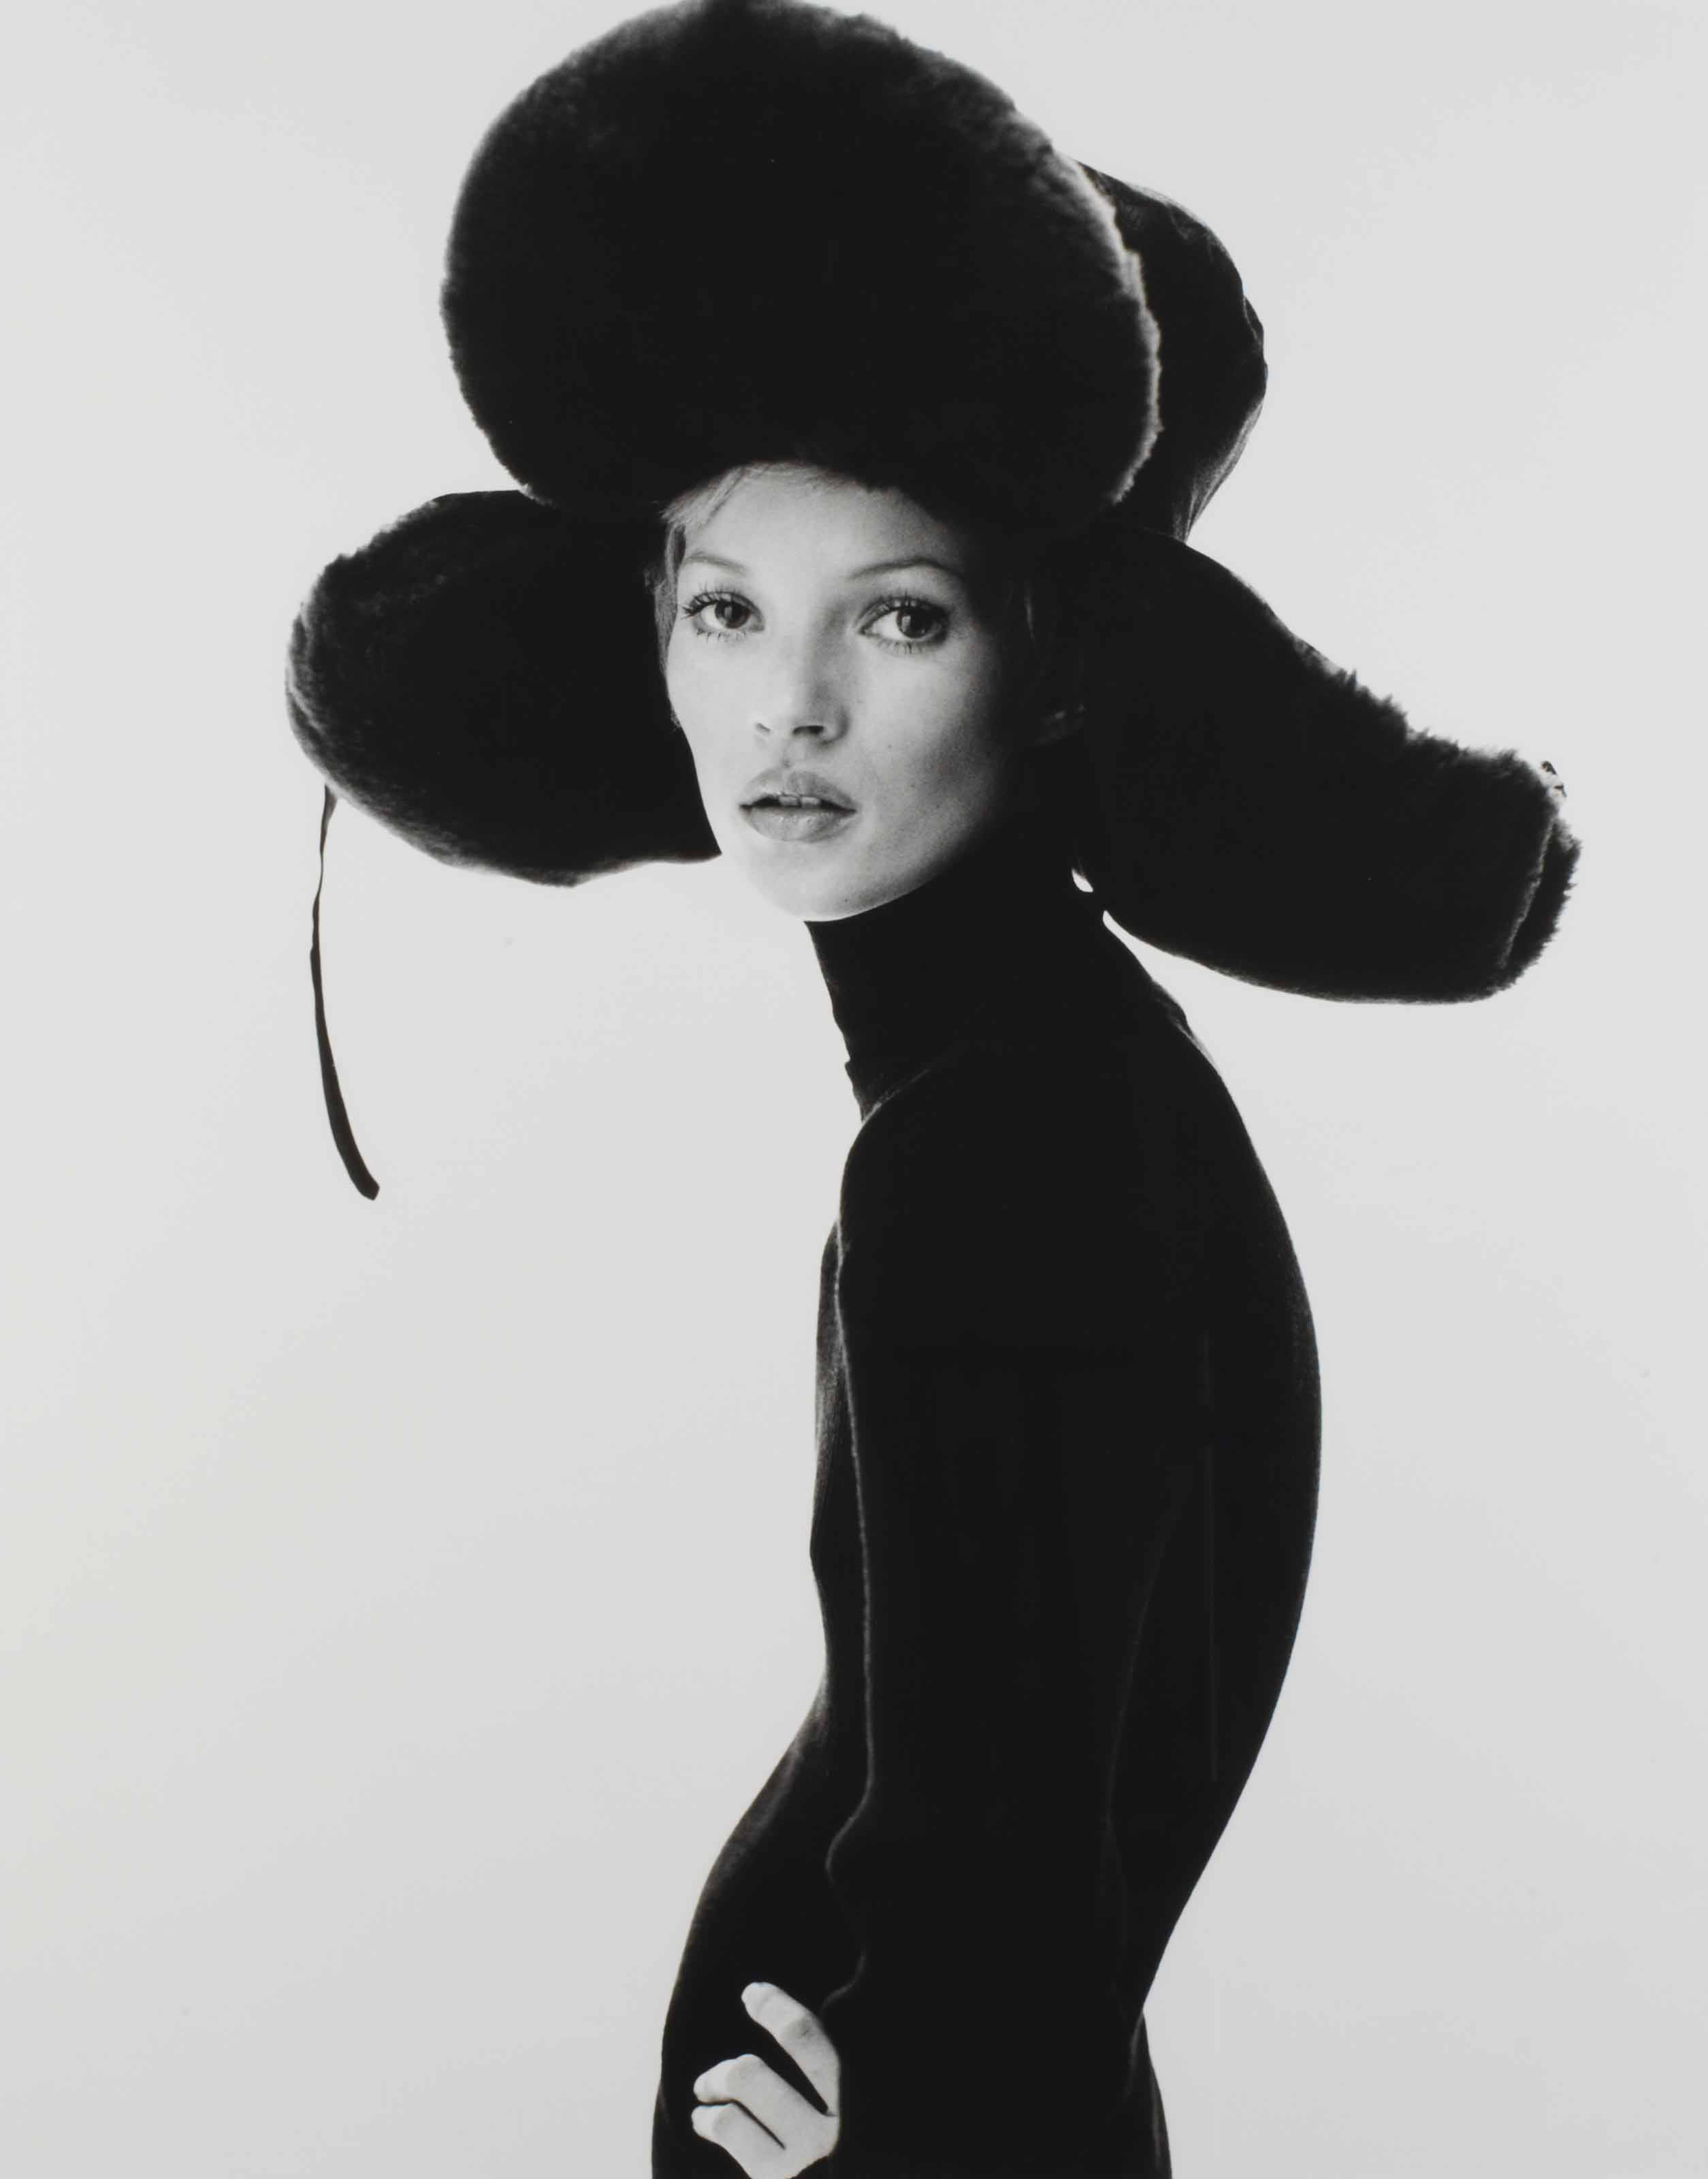 Girl with Hat (Kate Moss), 1993